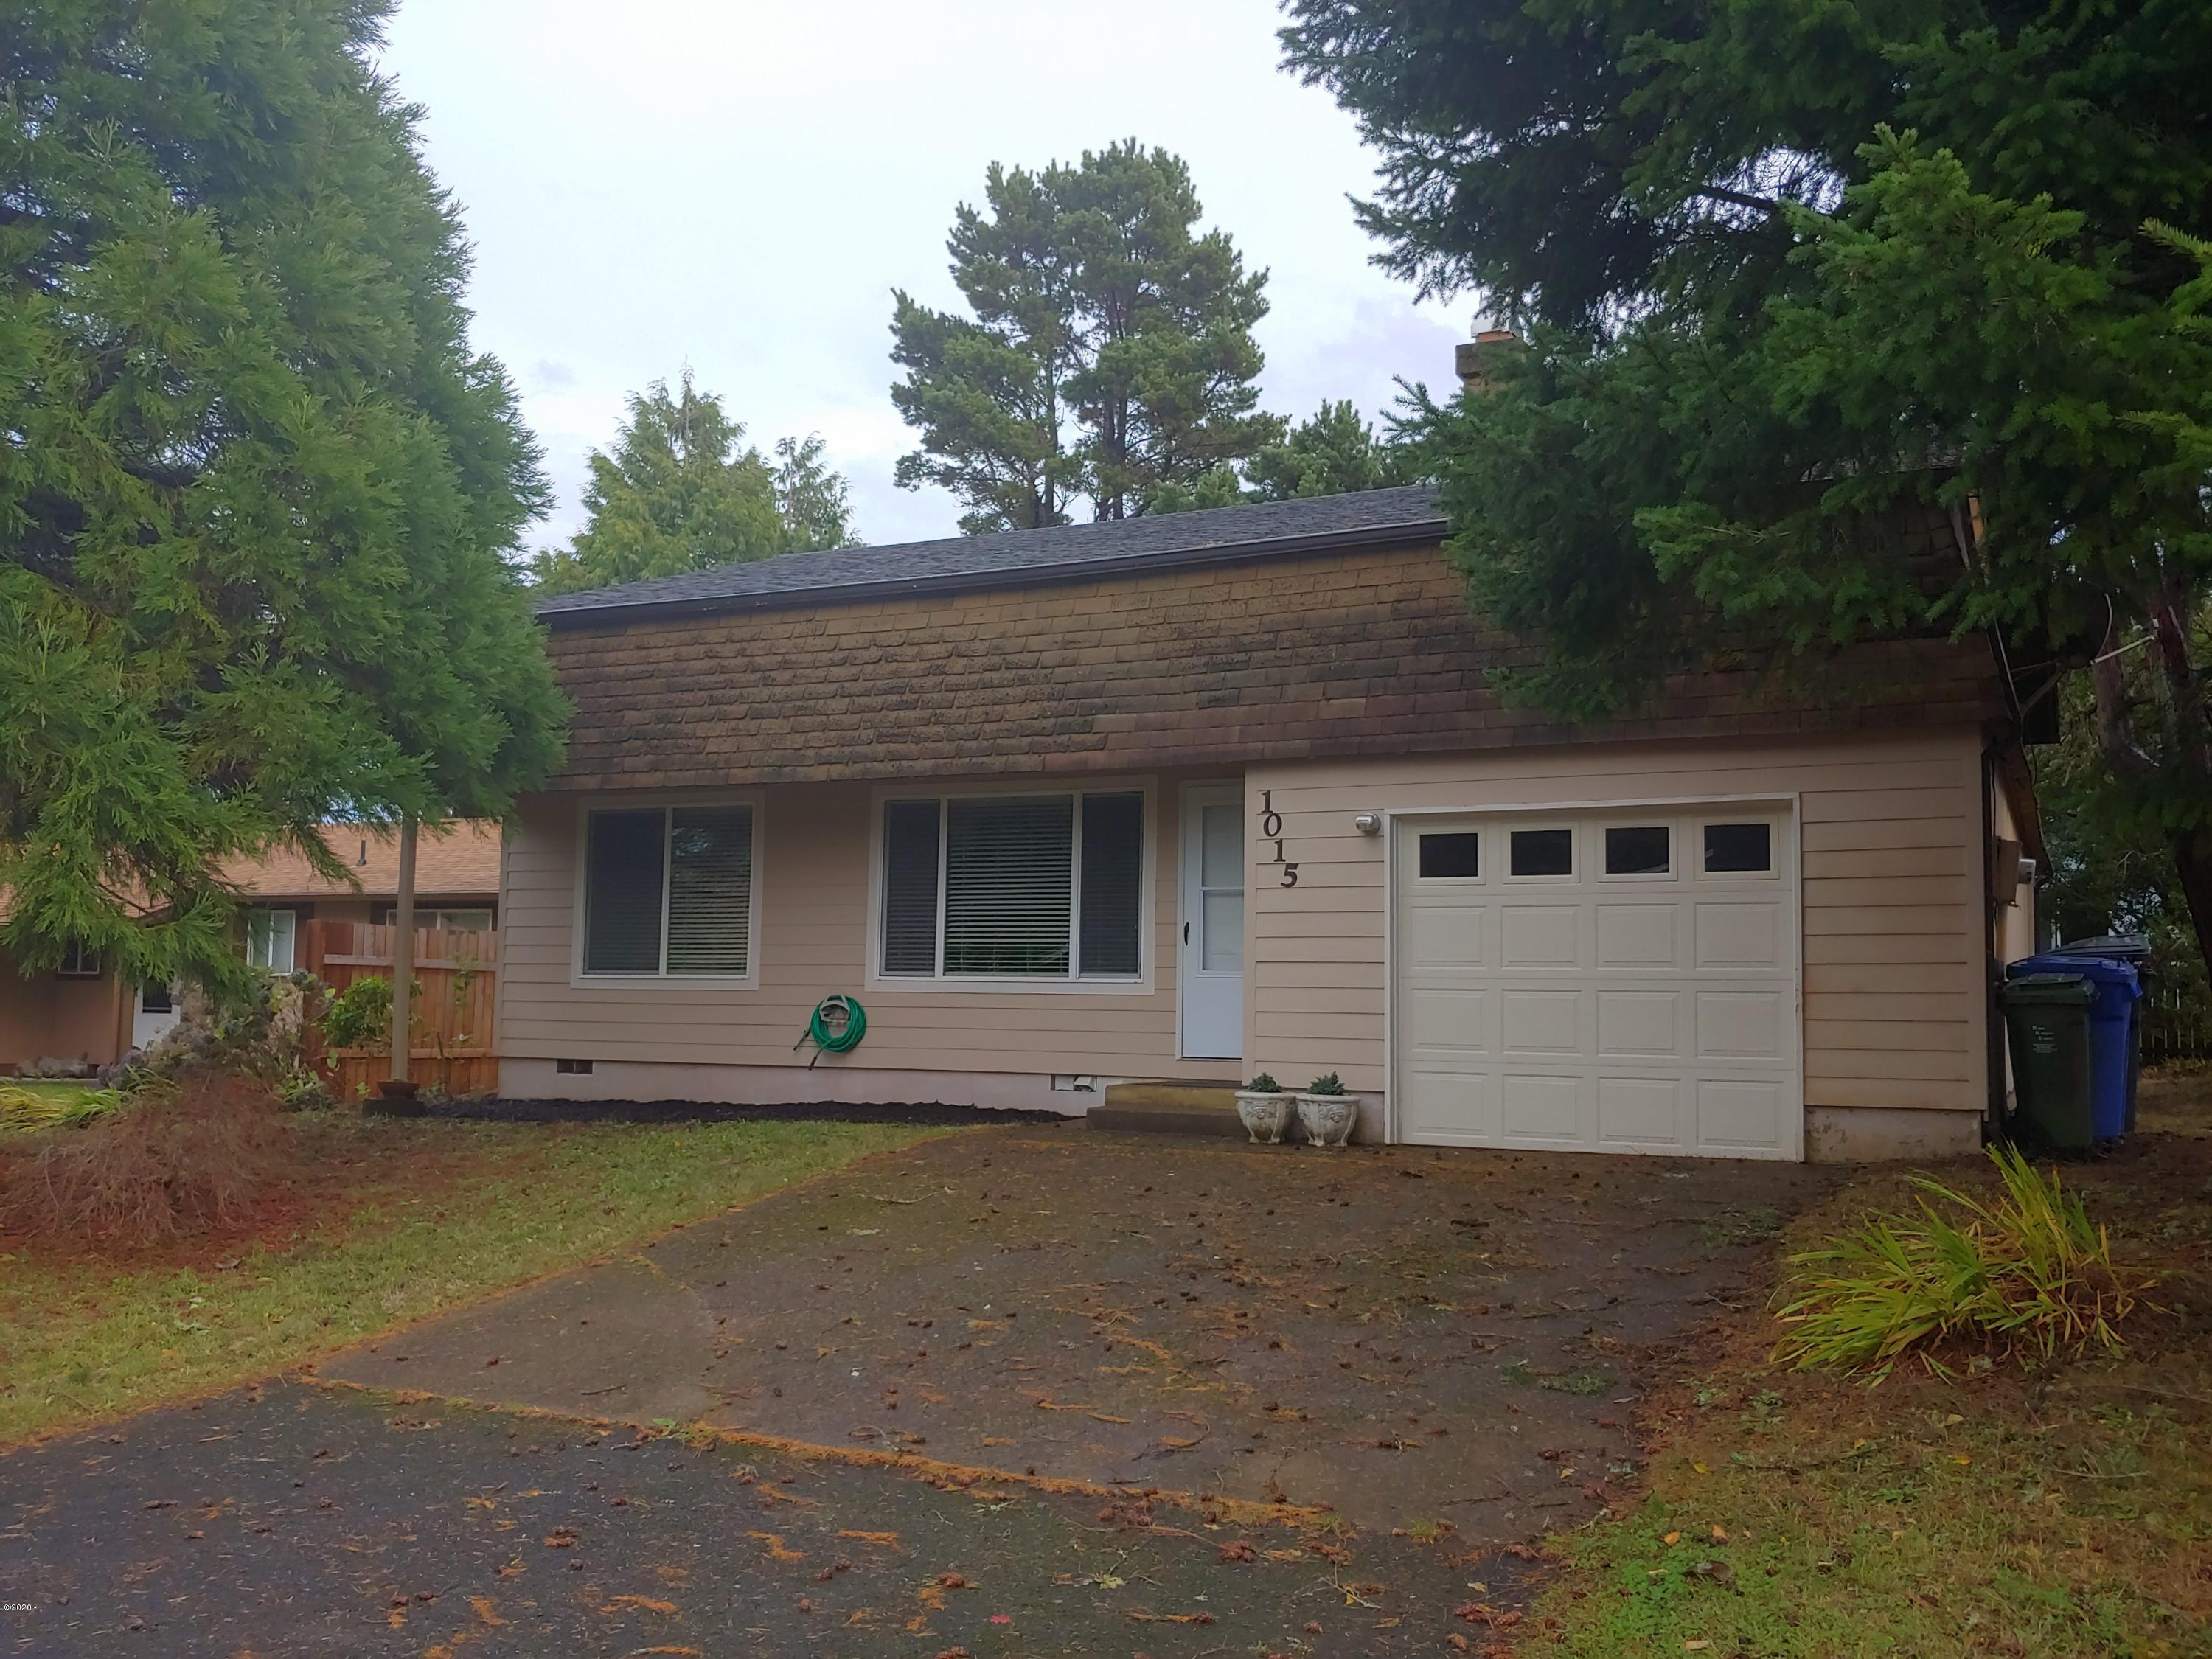 1015 SE Rolph Ct, Waldport, OR 97394 - 20201116_134310_HDR